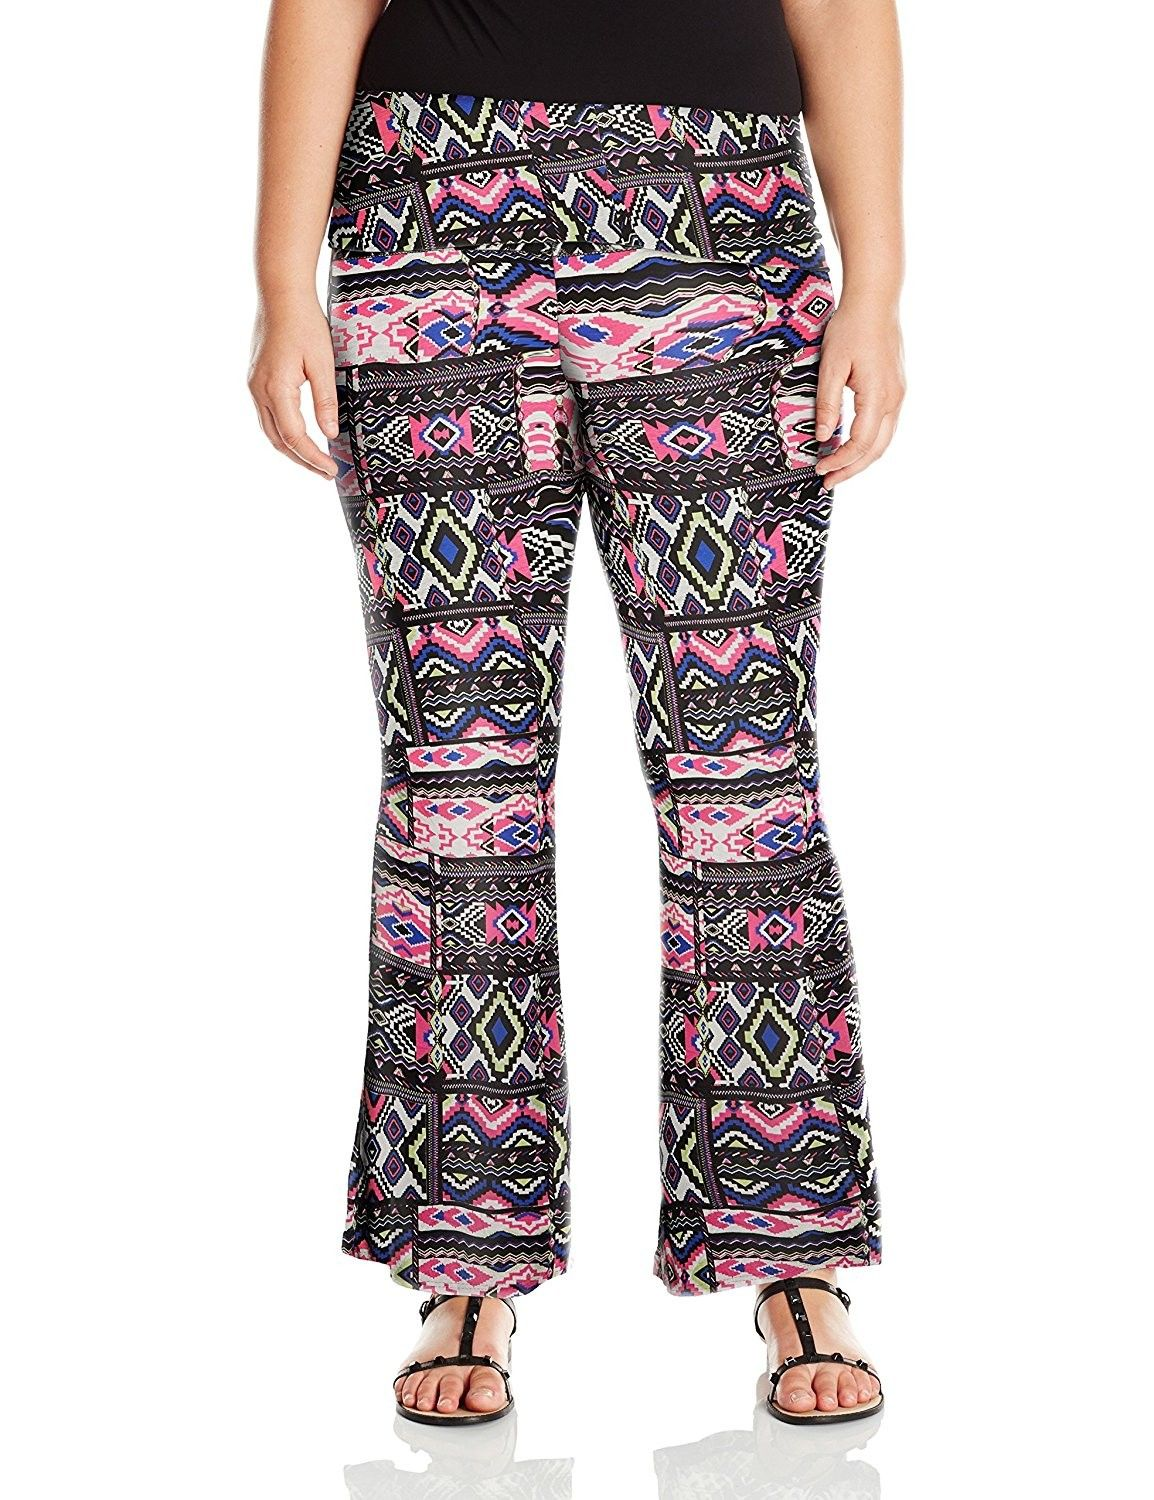 f163f3f1de1 Junior s Plus-Size Printed Flare Leg Pant With Foldover Waistband ...